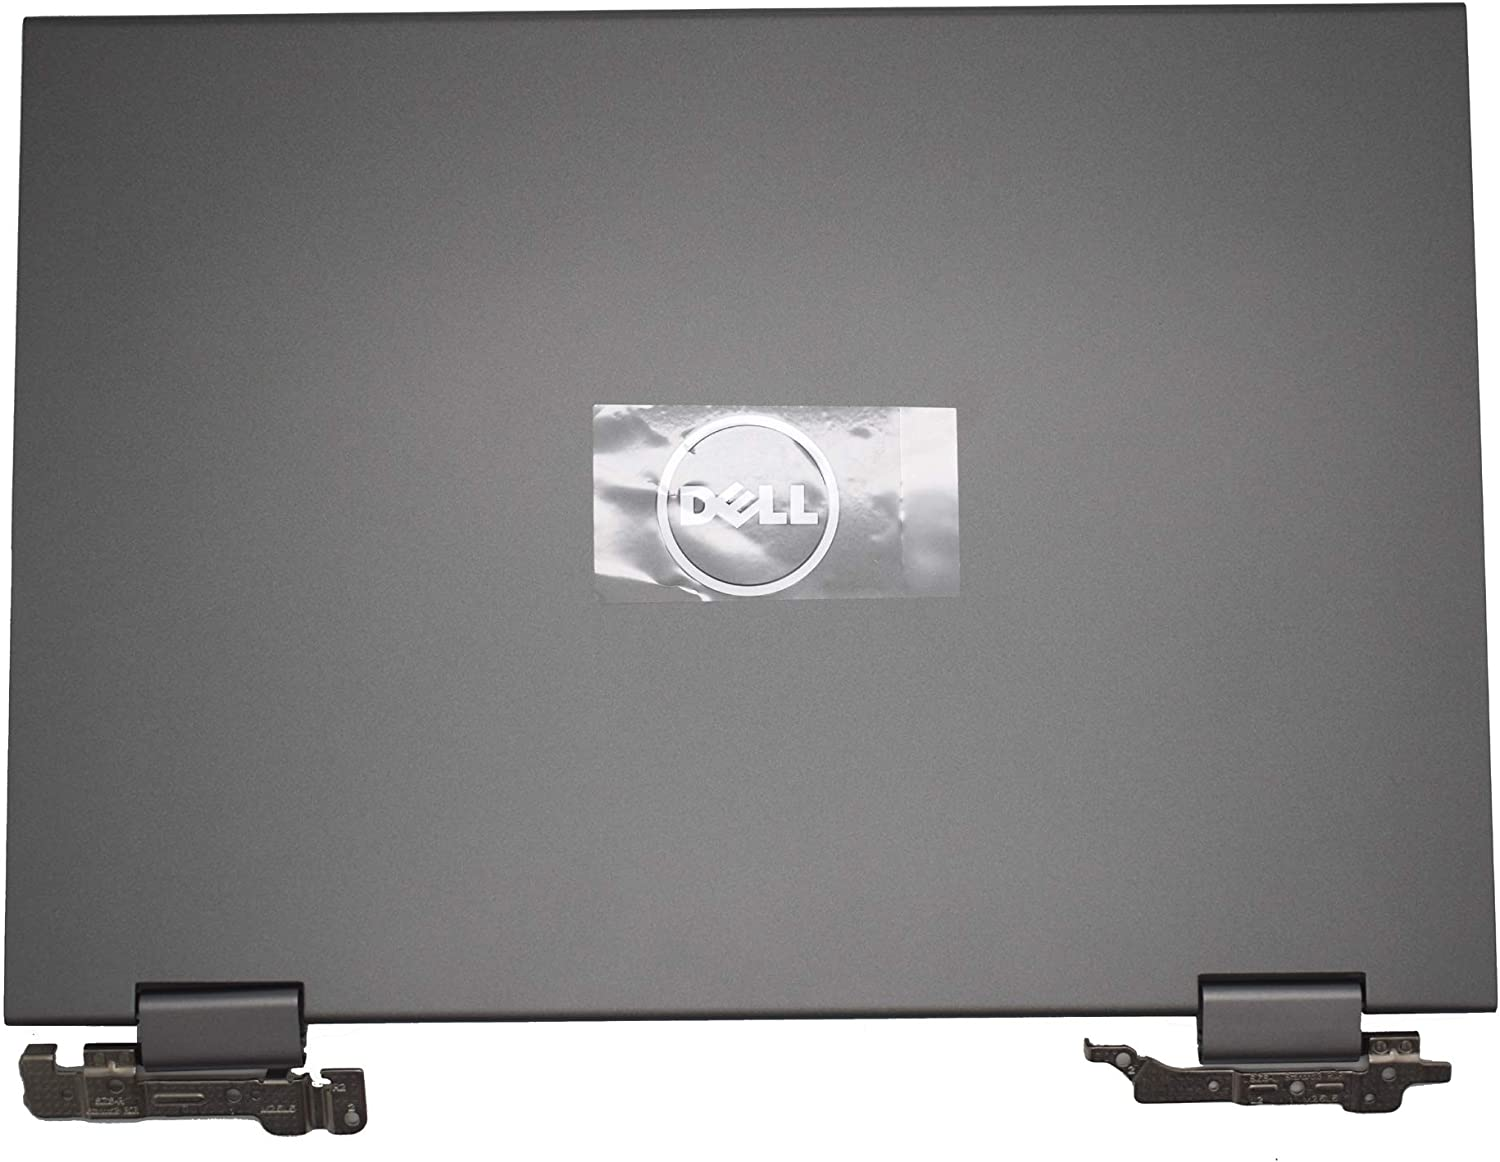 LHYParts - New Laptop Rear Lid Back Cover Top Case for Dell Inspiron 13 5379 5368 5378 w/Hinge & Antenna Cable Gray 0HH2FY HH2FY